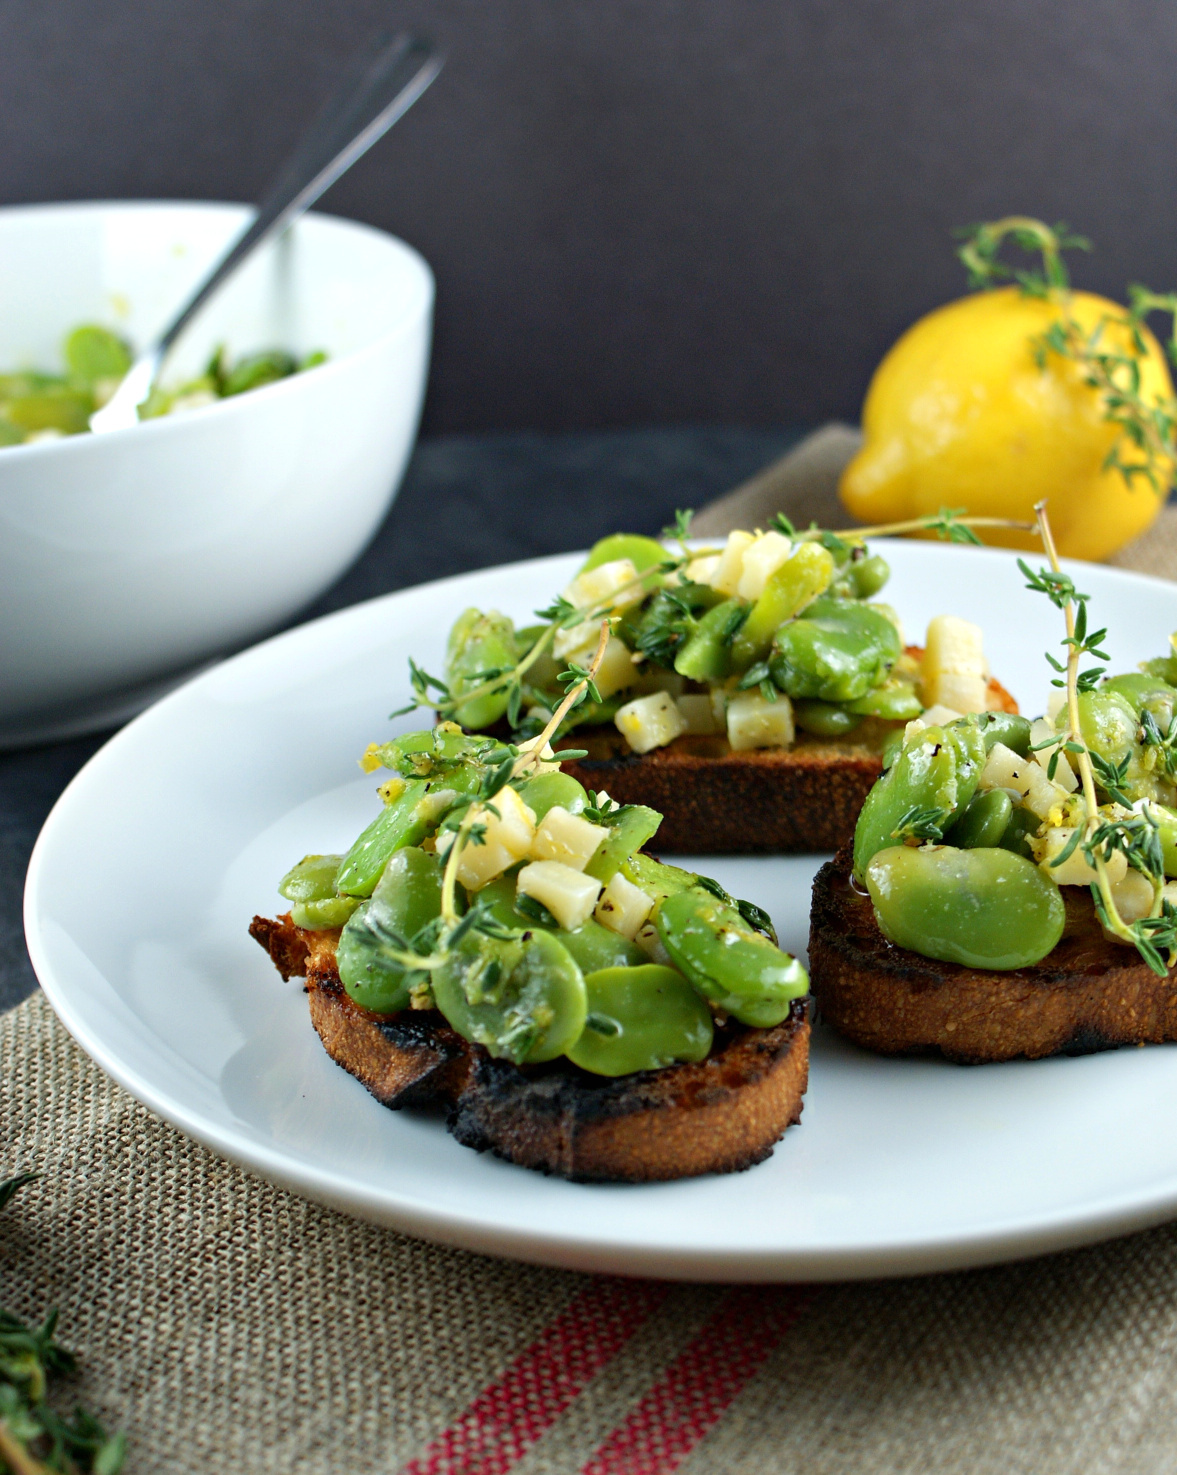 Authentic Suburban Gourmet: Fava Bean and Parmesan Crostini